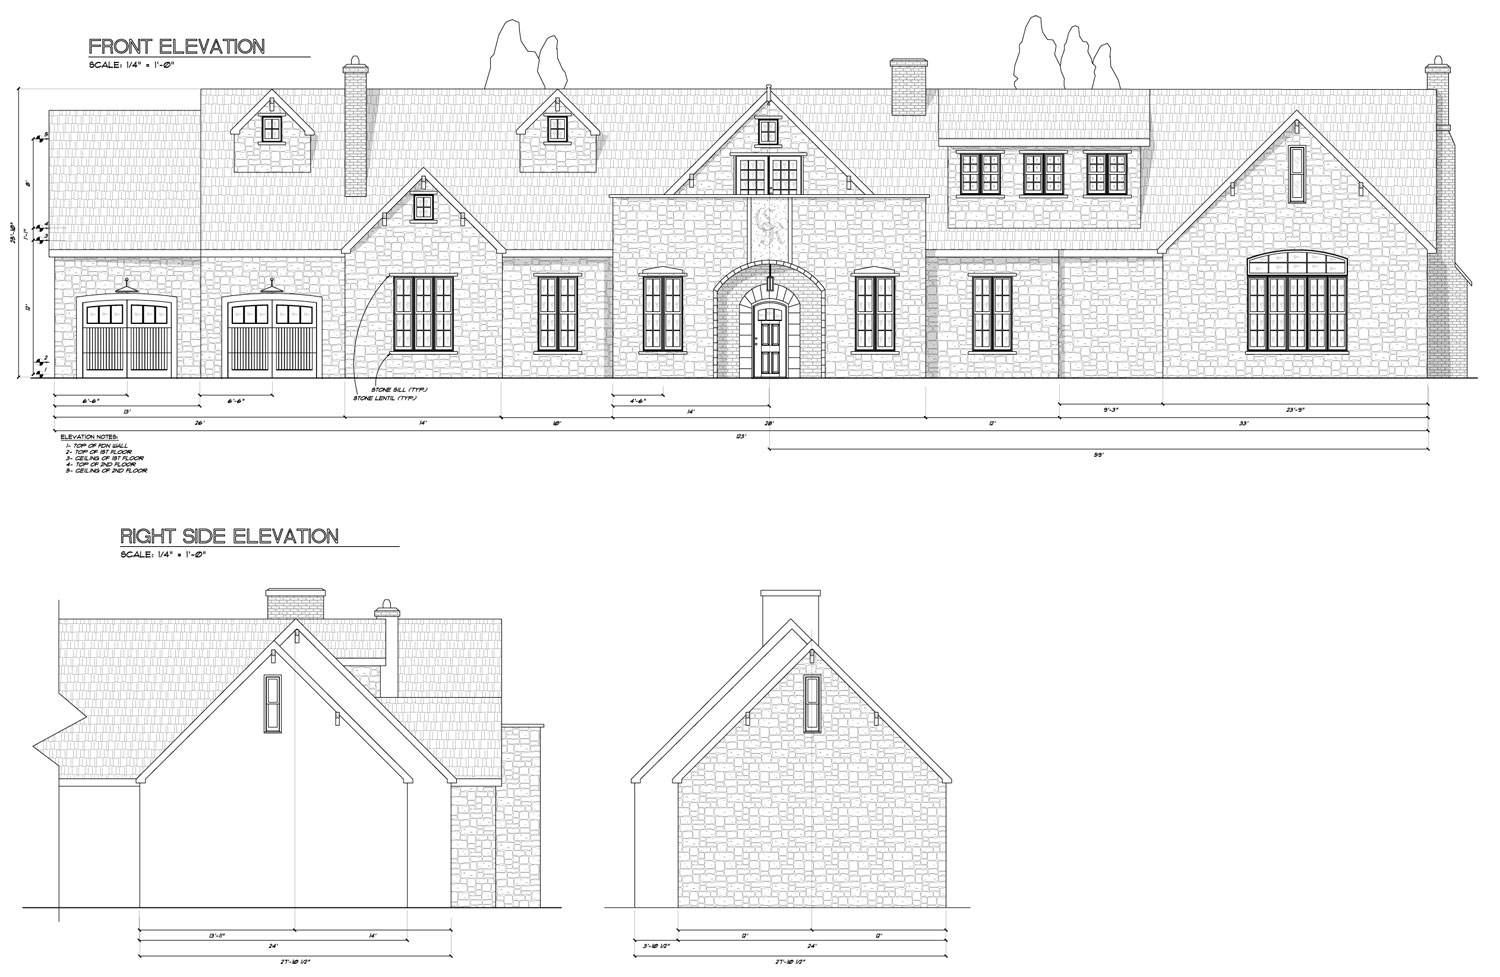 Owens laing llc sample elevation drawing for Sample construction plans